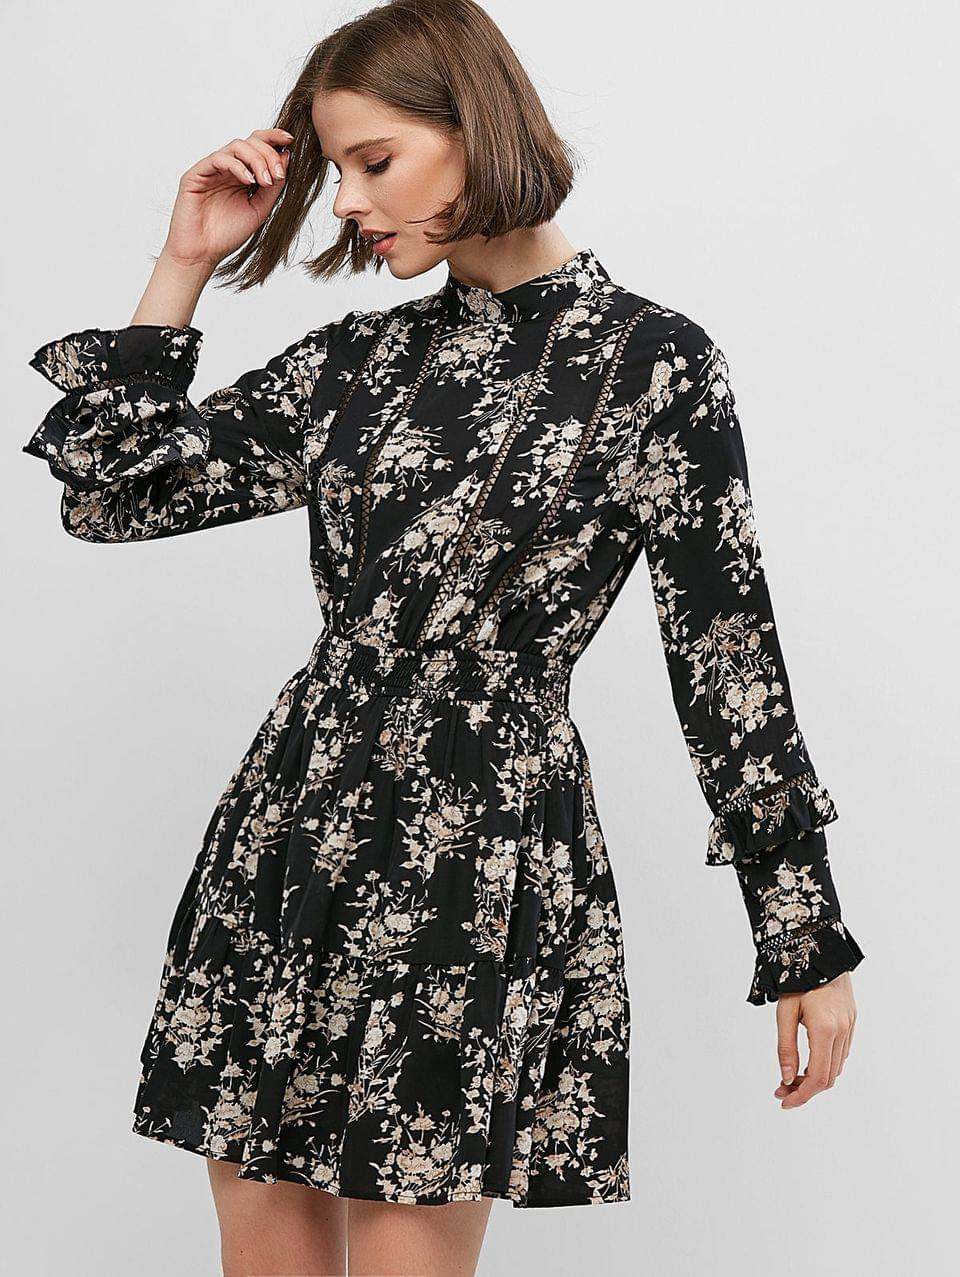 Women's Floral Print Crotchet Trim Long Sleeve Mini Dress - Black Xs